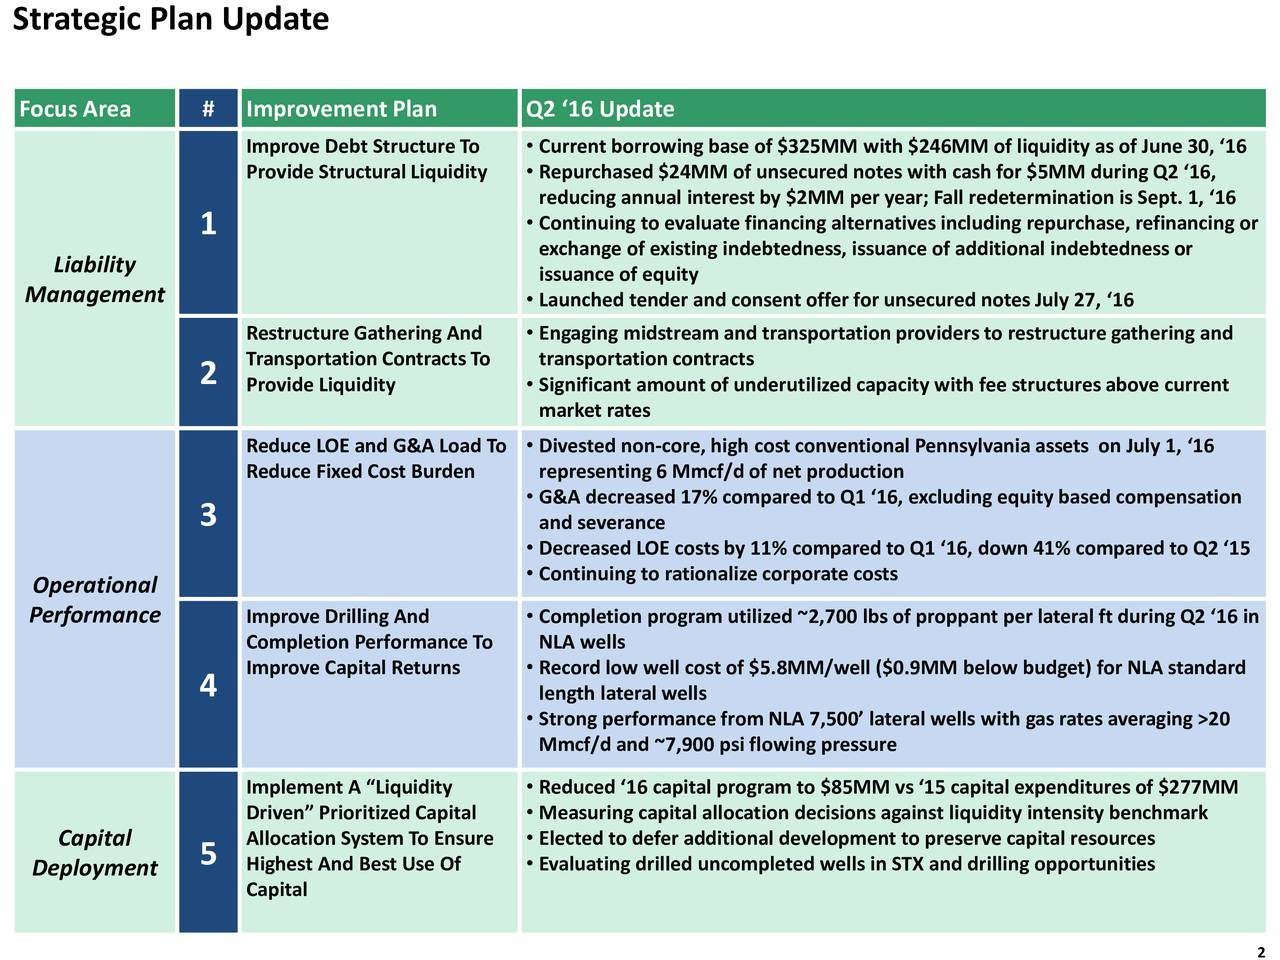 Focus Area # Improvement Plan Q2 16 Update Improve Debt StructureTo  Current borrowing base of $325MM with $246MM of liquidity as of June 30, 16 Provide Structural Liquidity Repurchased $24MM of unsecured notes with cash for $5MM during Q2 16, reducing annual interest by $2MM per year; Fall redetermination is Sept. 1, 16 1  Continuing to evaluate financing alternatives including repurchase, refinancing or exchange of existing indebtedness, issuance of additional indebtedness or Liability issuance of equity Management  Launched tender and consent offer for unsecured notes July 27, 16 RestructureGathering And  Engaging midstream and transportation providers to restructuregathering and 2 Transportation Contracts To transportation contracts Provide Liquidity  Significant amount of underutilized capacity with fee structures above current market rates Reduce LOE and G&A Load To  Divested non-core, high cost conventional Pennsylvania assets on July 1, 16 Reduce Fixed Cost Burden representing 6 Mmcf/d of net production 3  G&A decreased 17% compared to Q1 16, excluding equity based compensation and severance Decreased LOE costs by 11% compared to Q1 16, down 41% compared to Q2 15 Operational  Continuing to rationalize corporate costs Performance Improve Drilling And  Completion program utilized ~2,700 lbs of proppant per lateral ft during Q2 16 in Completion Performance To NLA wells Improve Capital Returns  Record low well cost of $5.8MM/well ($0.9MM below budget) for NLA standard 4 length lateral wells Strong performance from NLA 7,500 lateral wells with gas rates averaging >20 Mmcf/d and ~7,900 psi flowing pressure Implement A Liquidity  Reduced 16 capital program to $85MM vs 15 capital expenditures of $277MM Driven Prioritized Capital  Measuring capital allocation decisions against liquidity intensity benchmark Capital Allocation System To Ensure  Elected to defer additional development to preserve capital resources Deployment 5 Highest And Best Use Of  Evaluating drilled